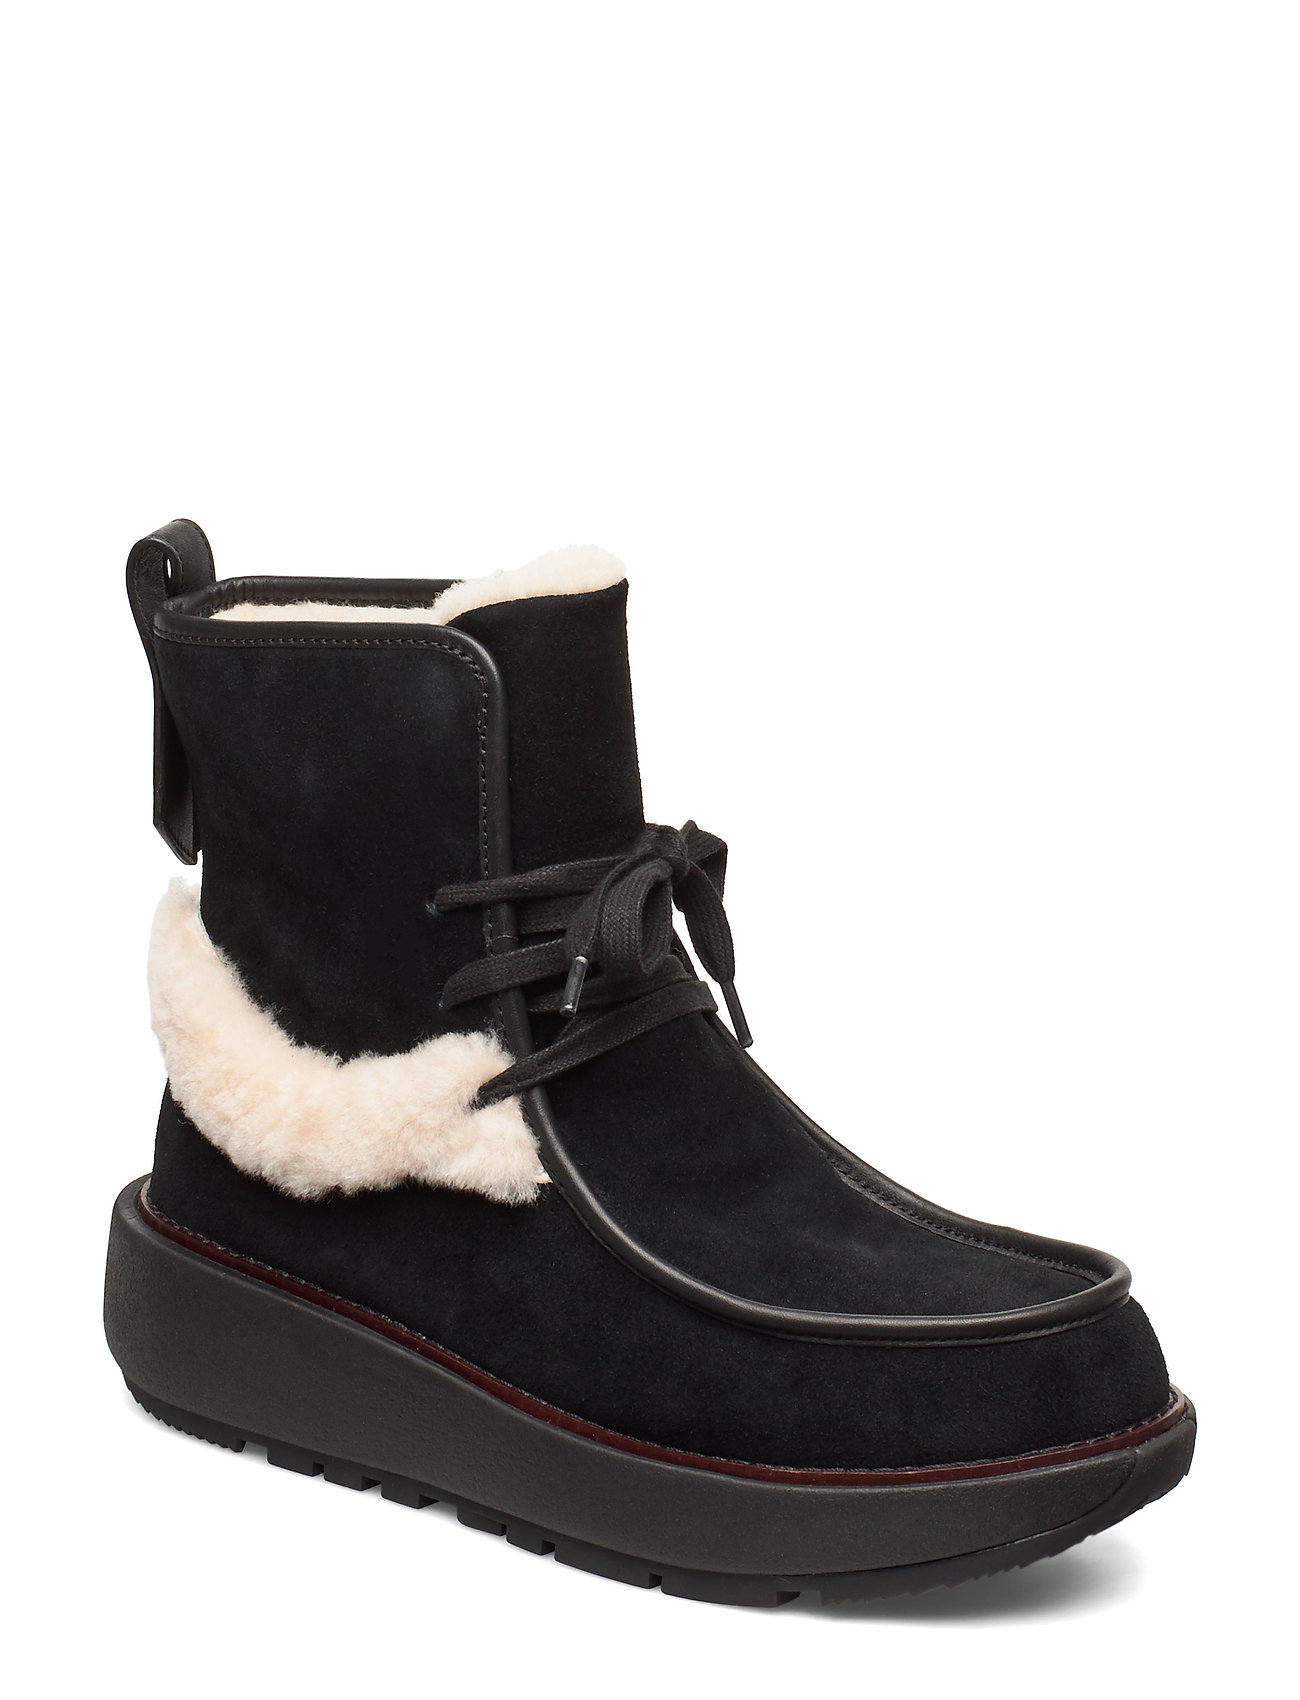 Image of Greta Moccassin Boot Shoes Boots Ankle Boots Ankle Boots Flat Heel Sort FitFlop (3250586865)